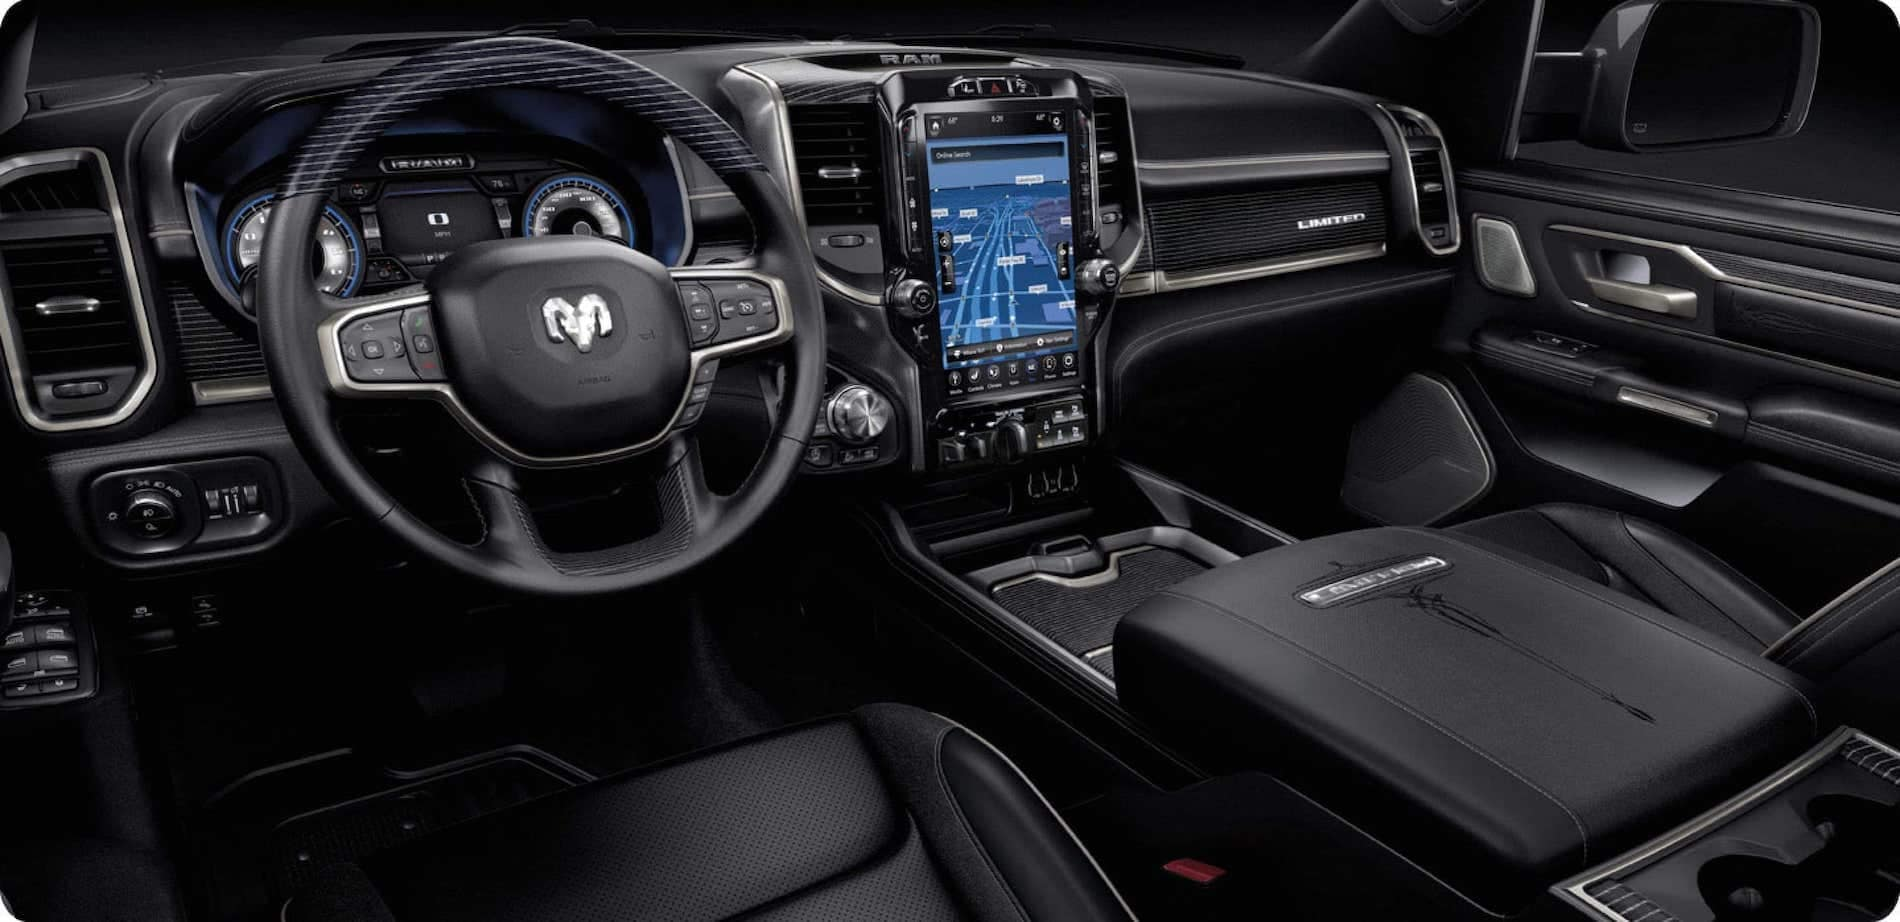 2021 Ram 1500 Interior Infotainment System available in Winchester, VA